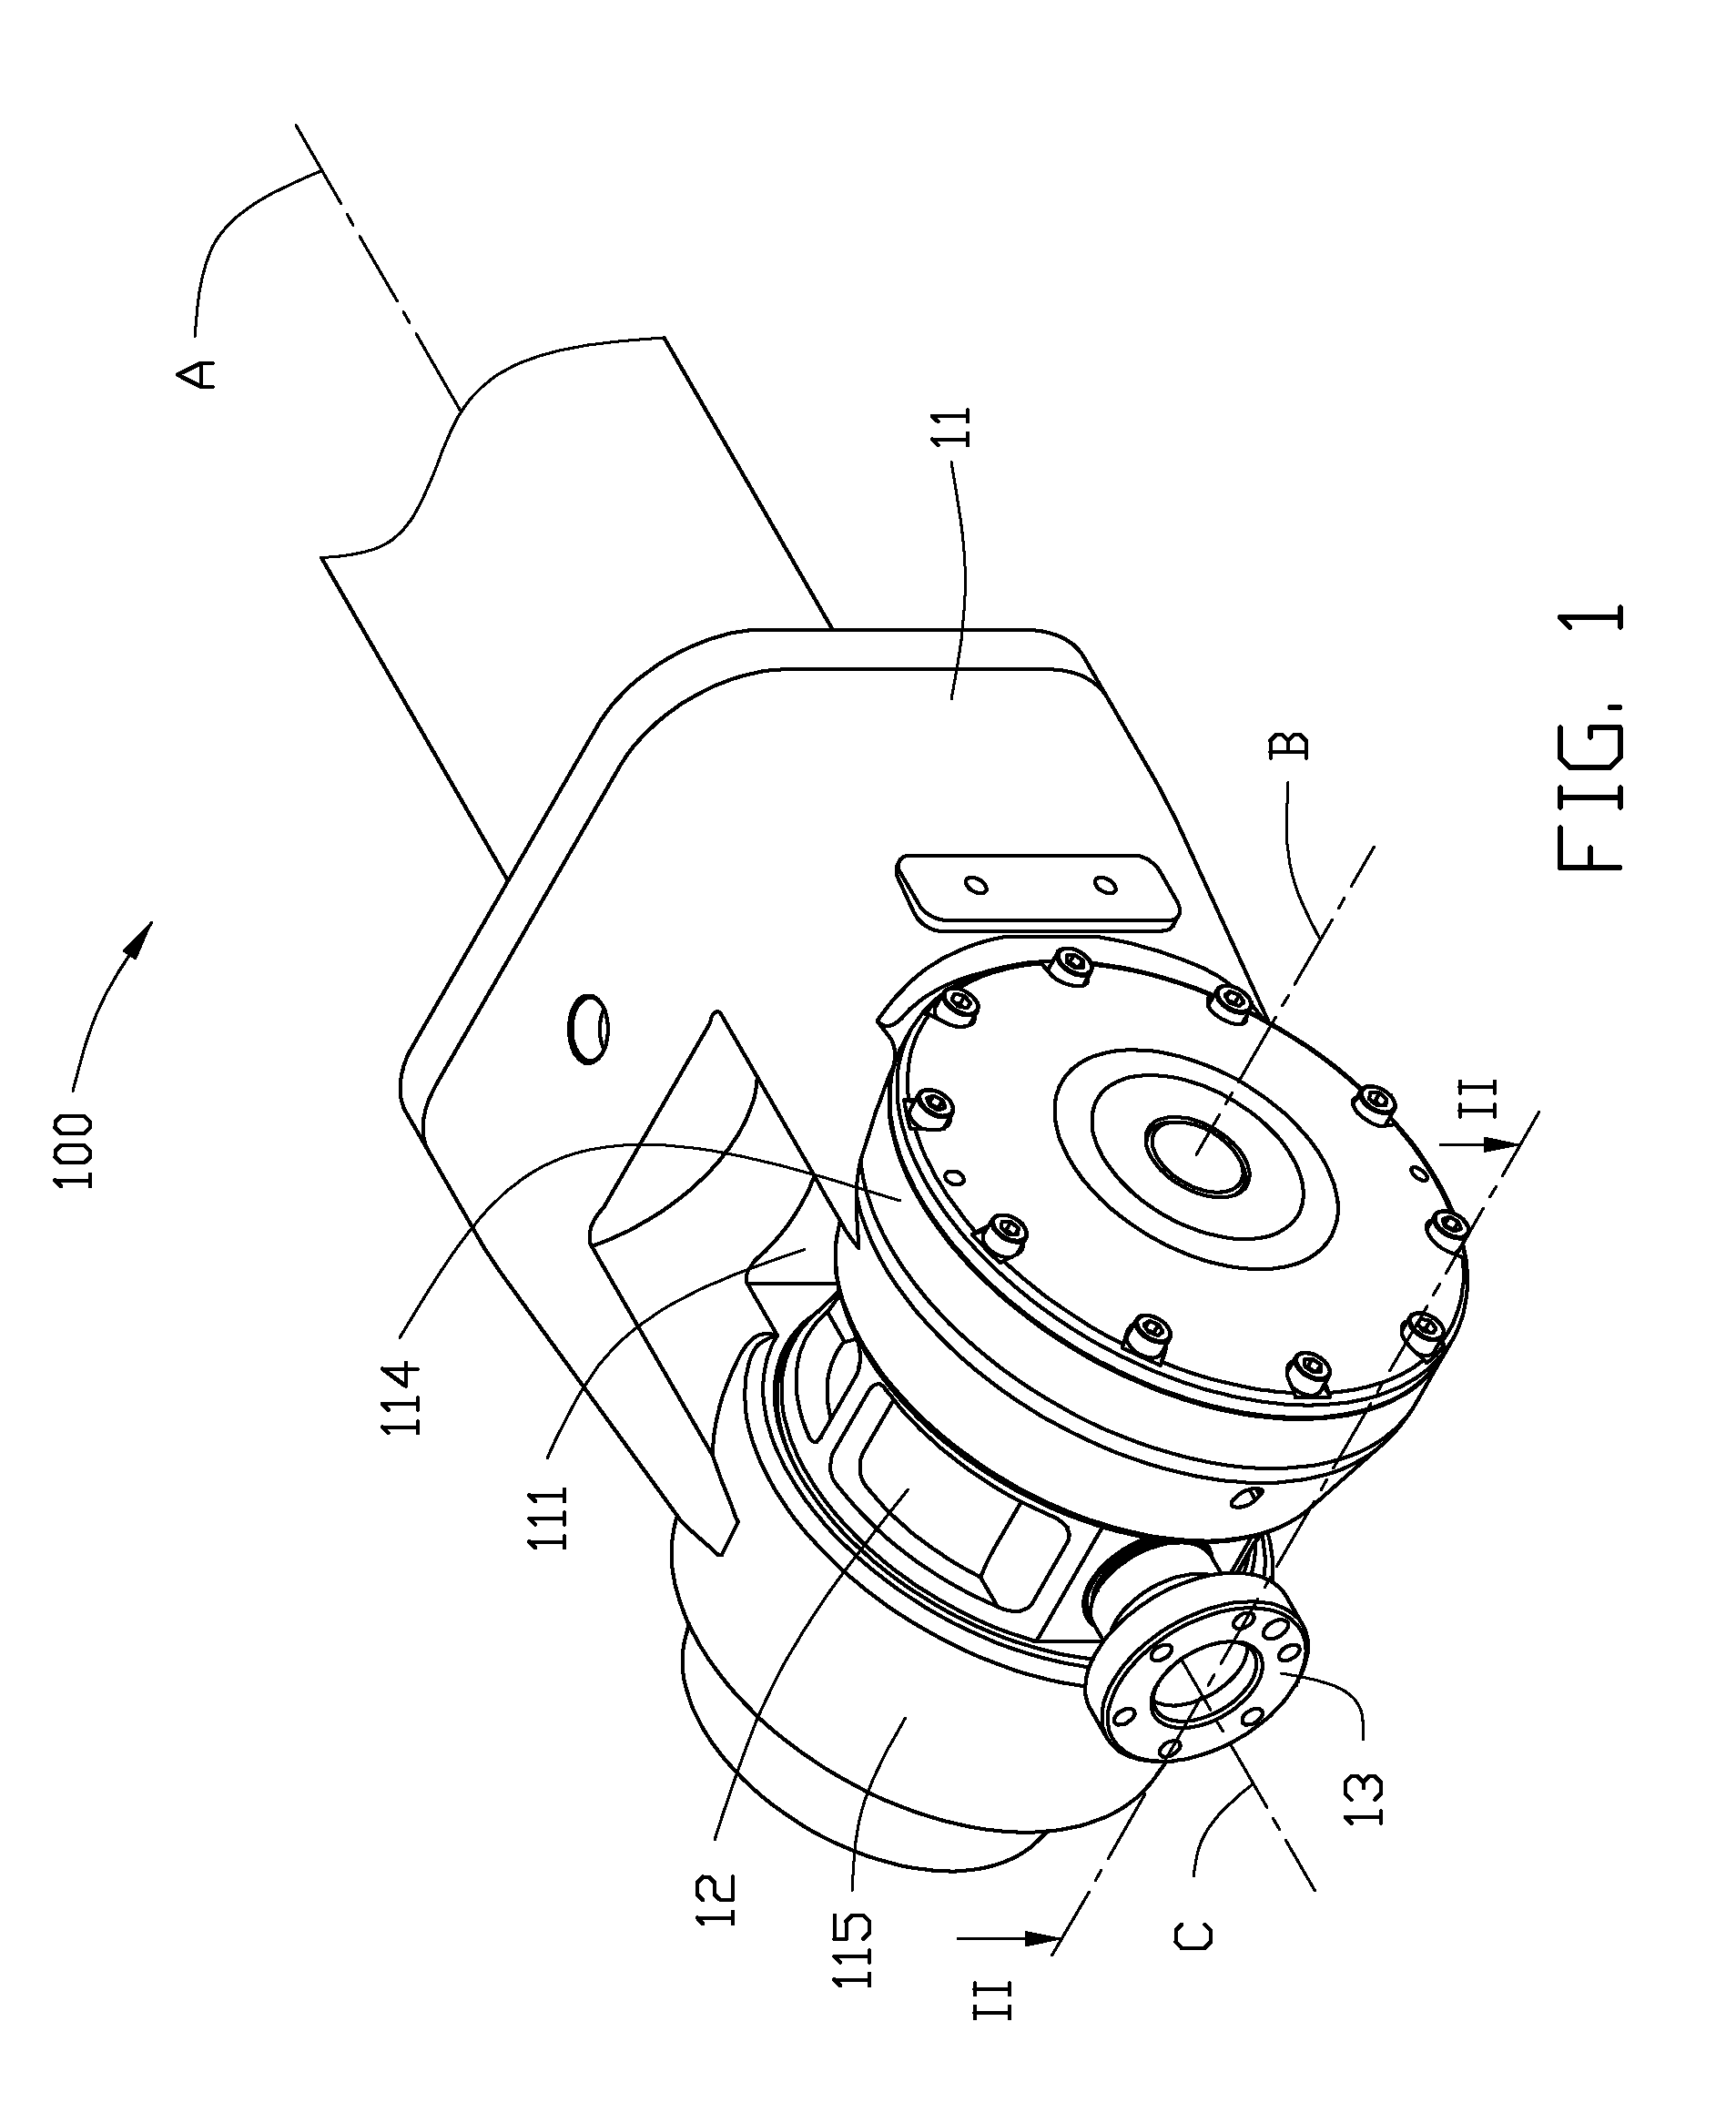 patent us8534155 - robot arm assembly